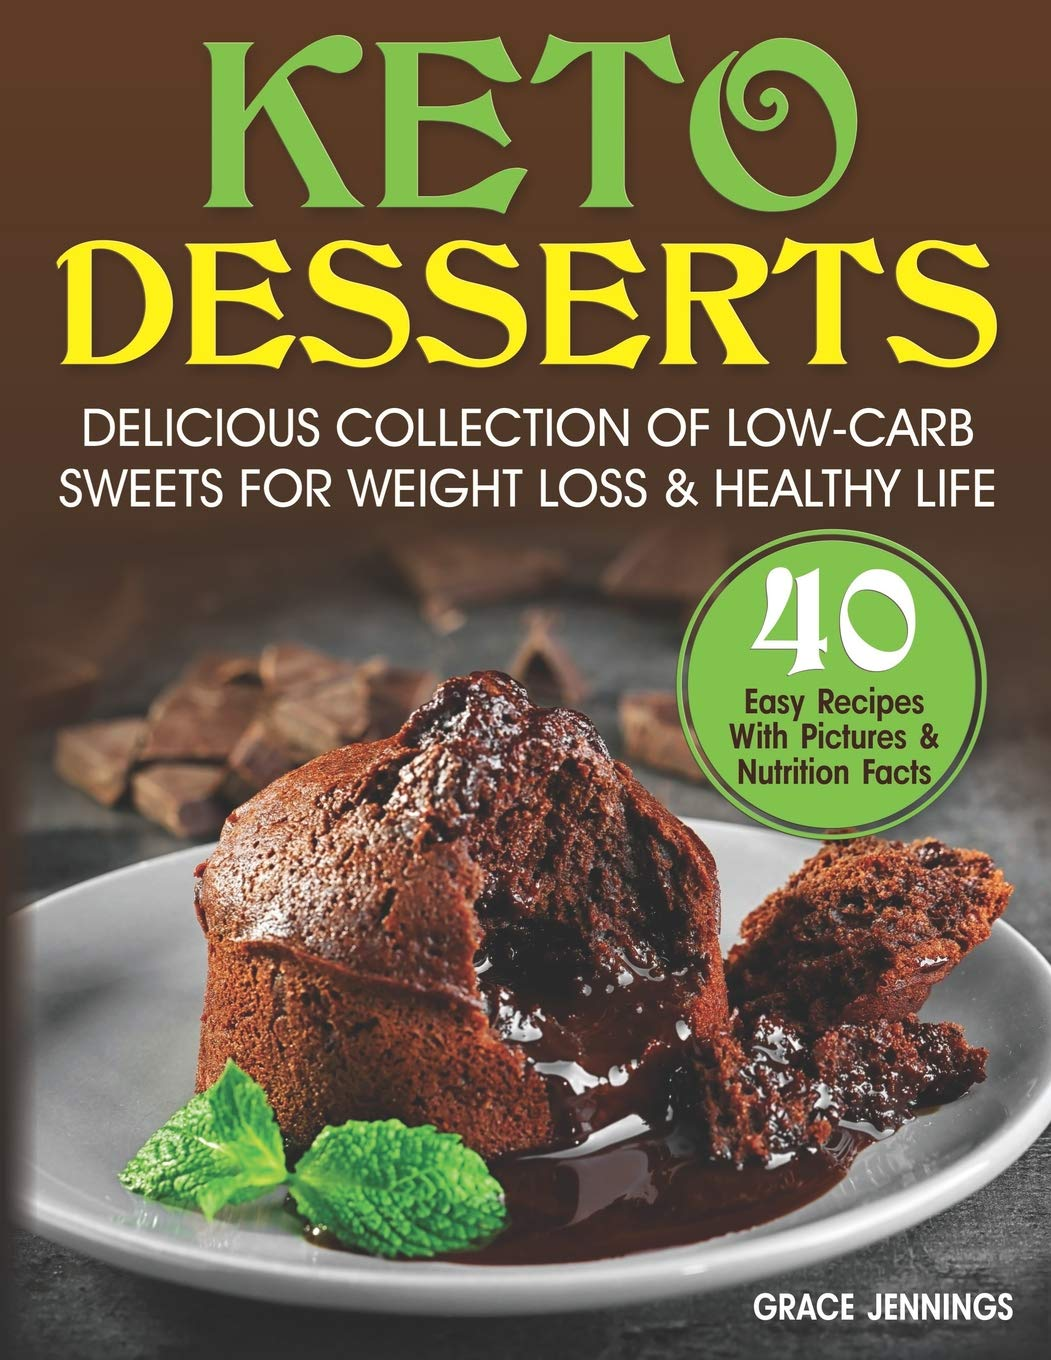 Keto Sweets Warranty Extension Offer